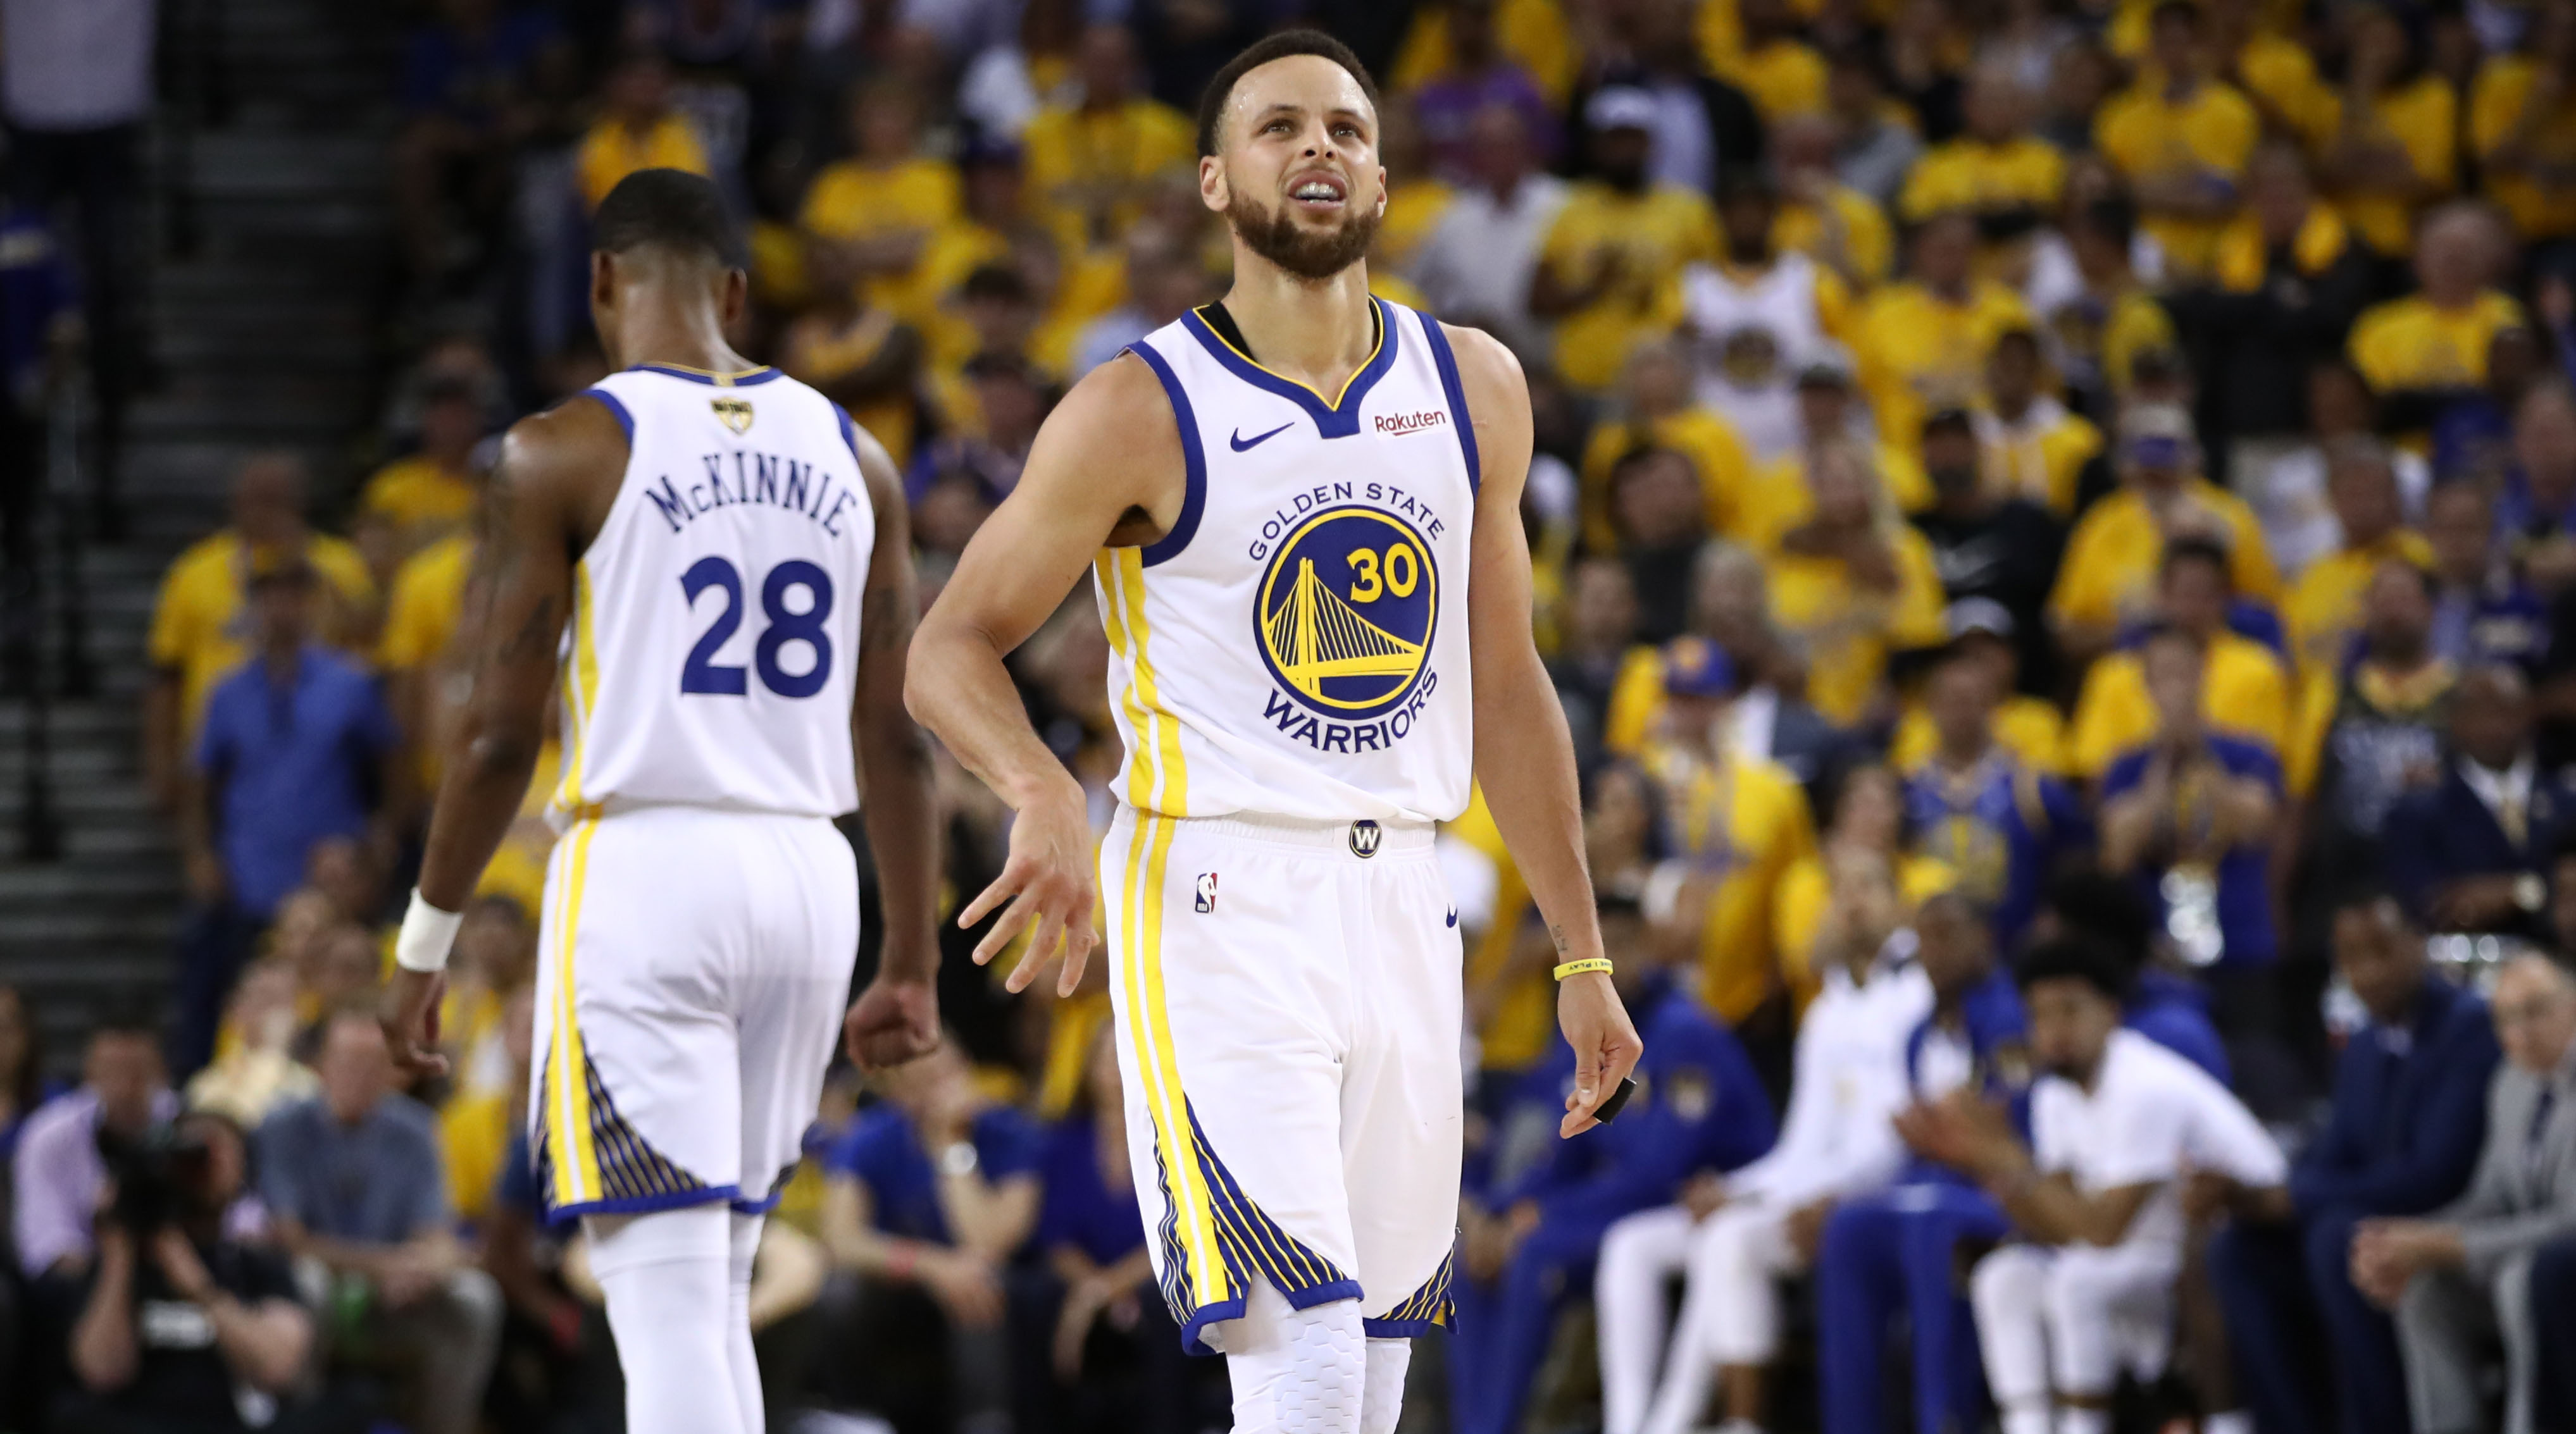 f60f3627368 NBA Finals 2019: The Raptors overwhelm Stephen Curry's all-out ...